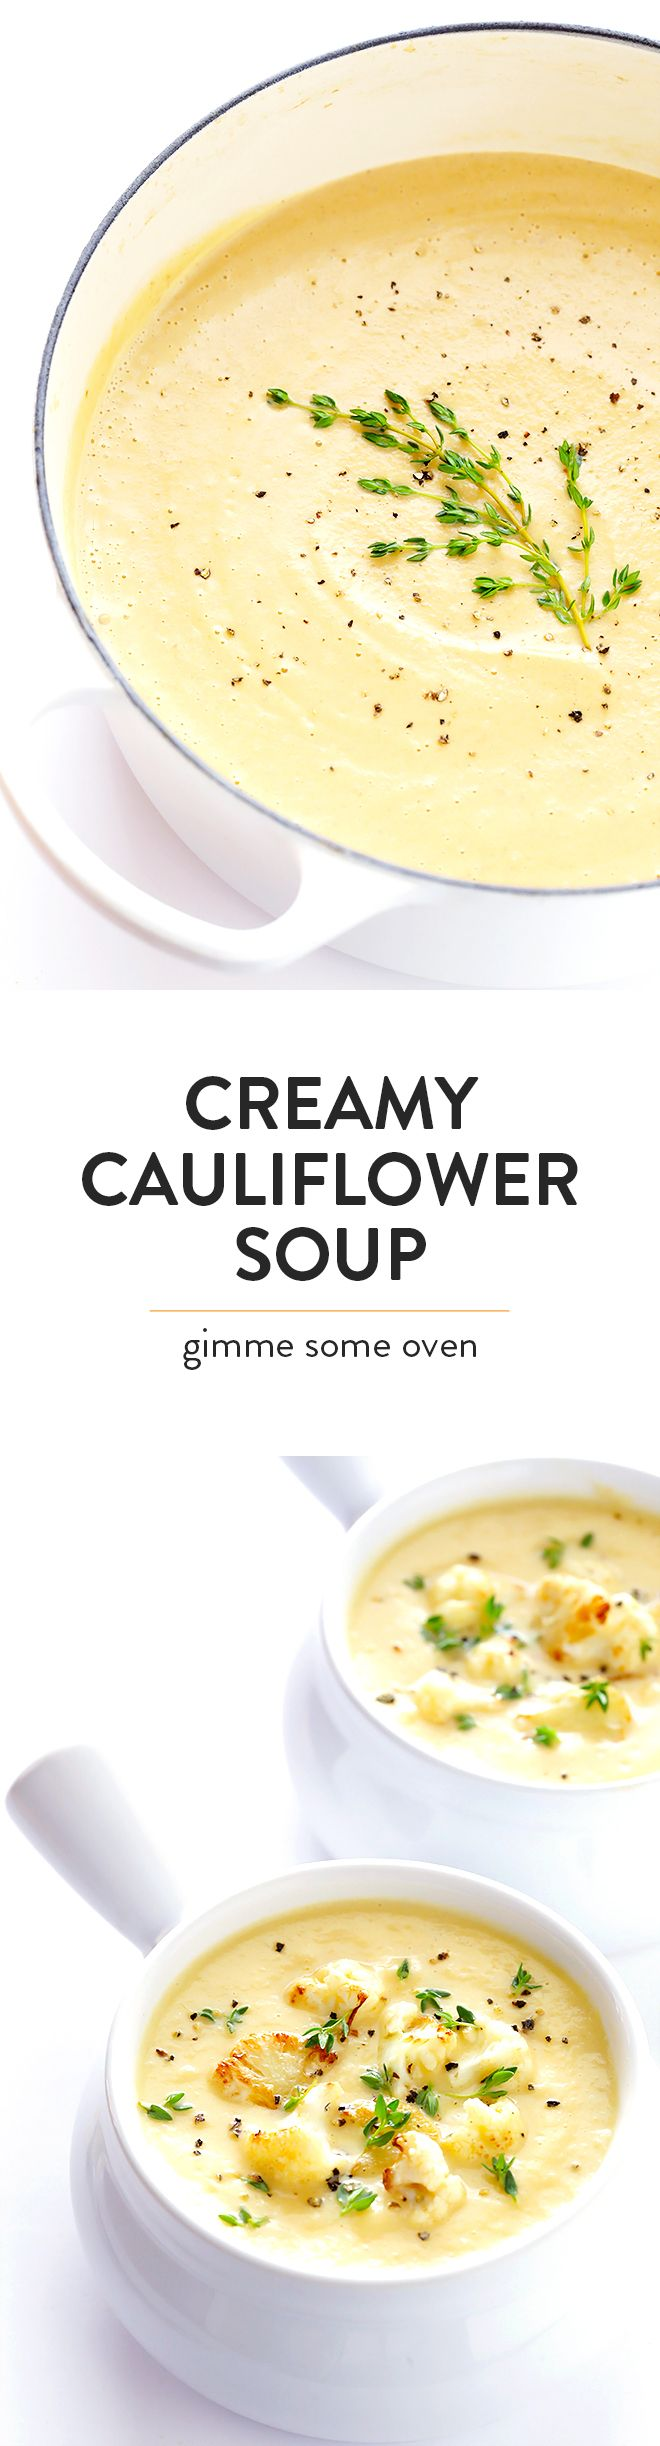 This Creamy Cauliflower Soup recipe is comfort food you can feel GOOD about. It's made with healthier ingredients, it's quick and easy to make, and it is so comforting and tasty. | gimmesomeoven.com (Vegan | Gluten-Free)